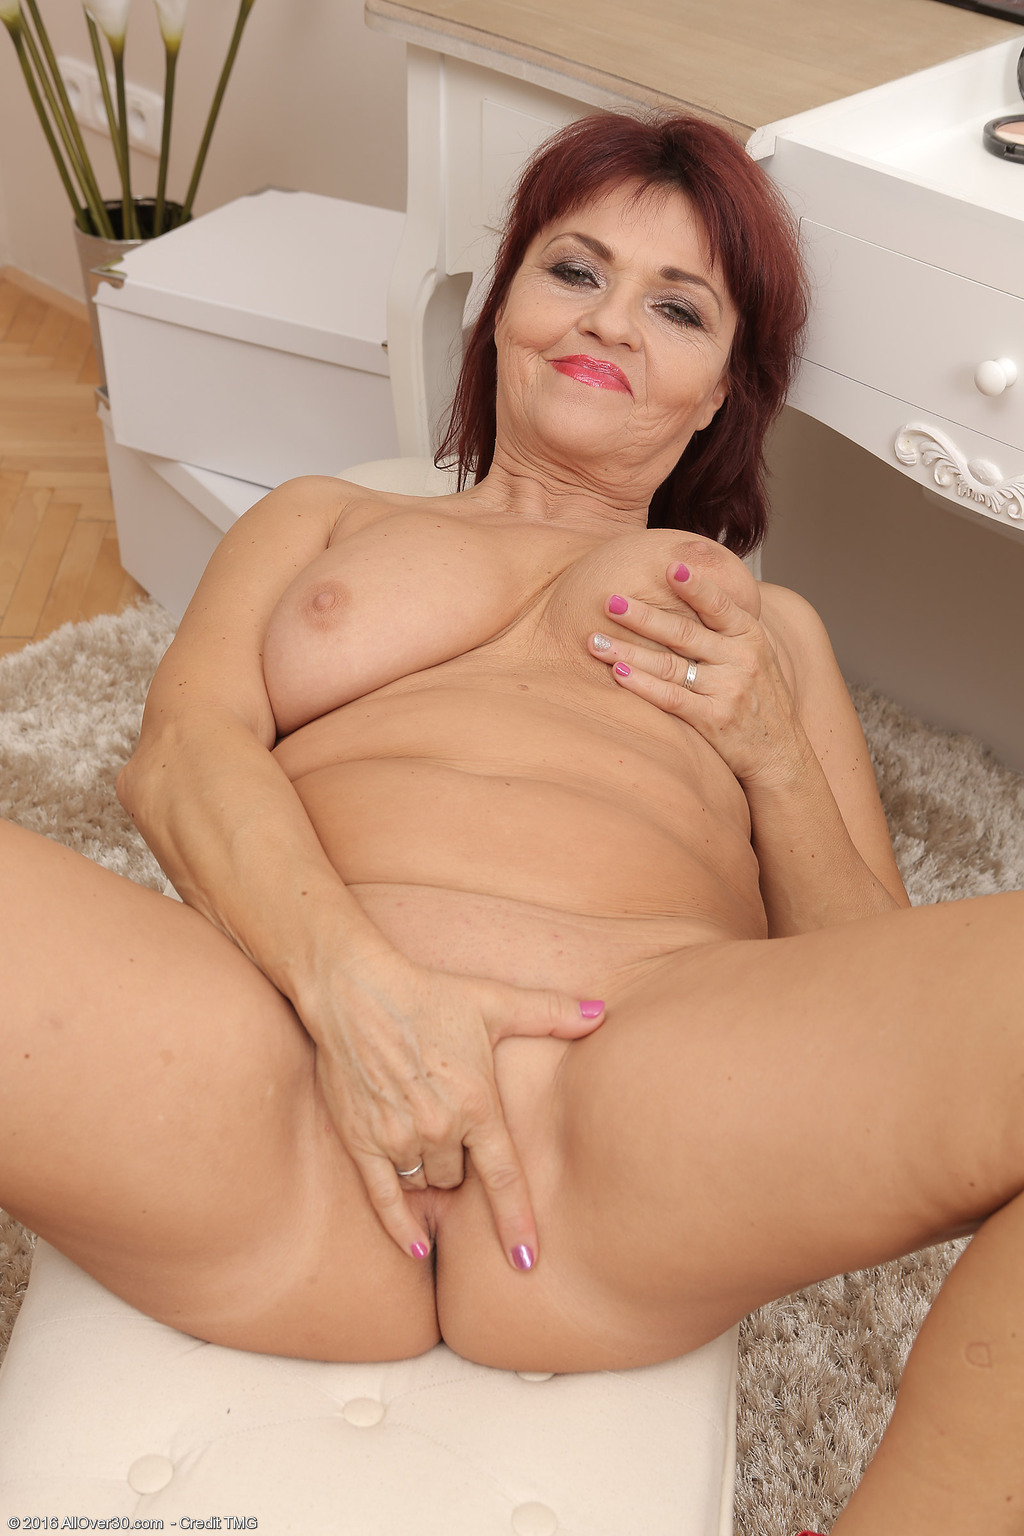 Allover30 Natalia 58 year old natalia muray - exclusive milf pictures from